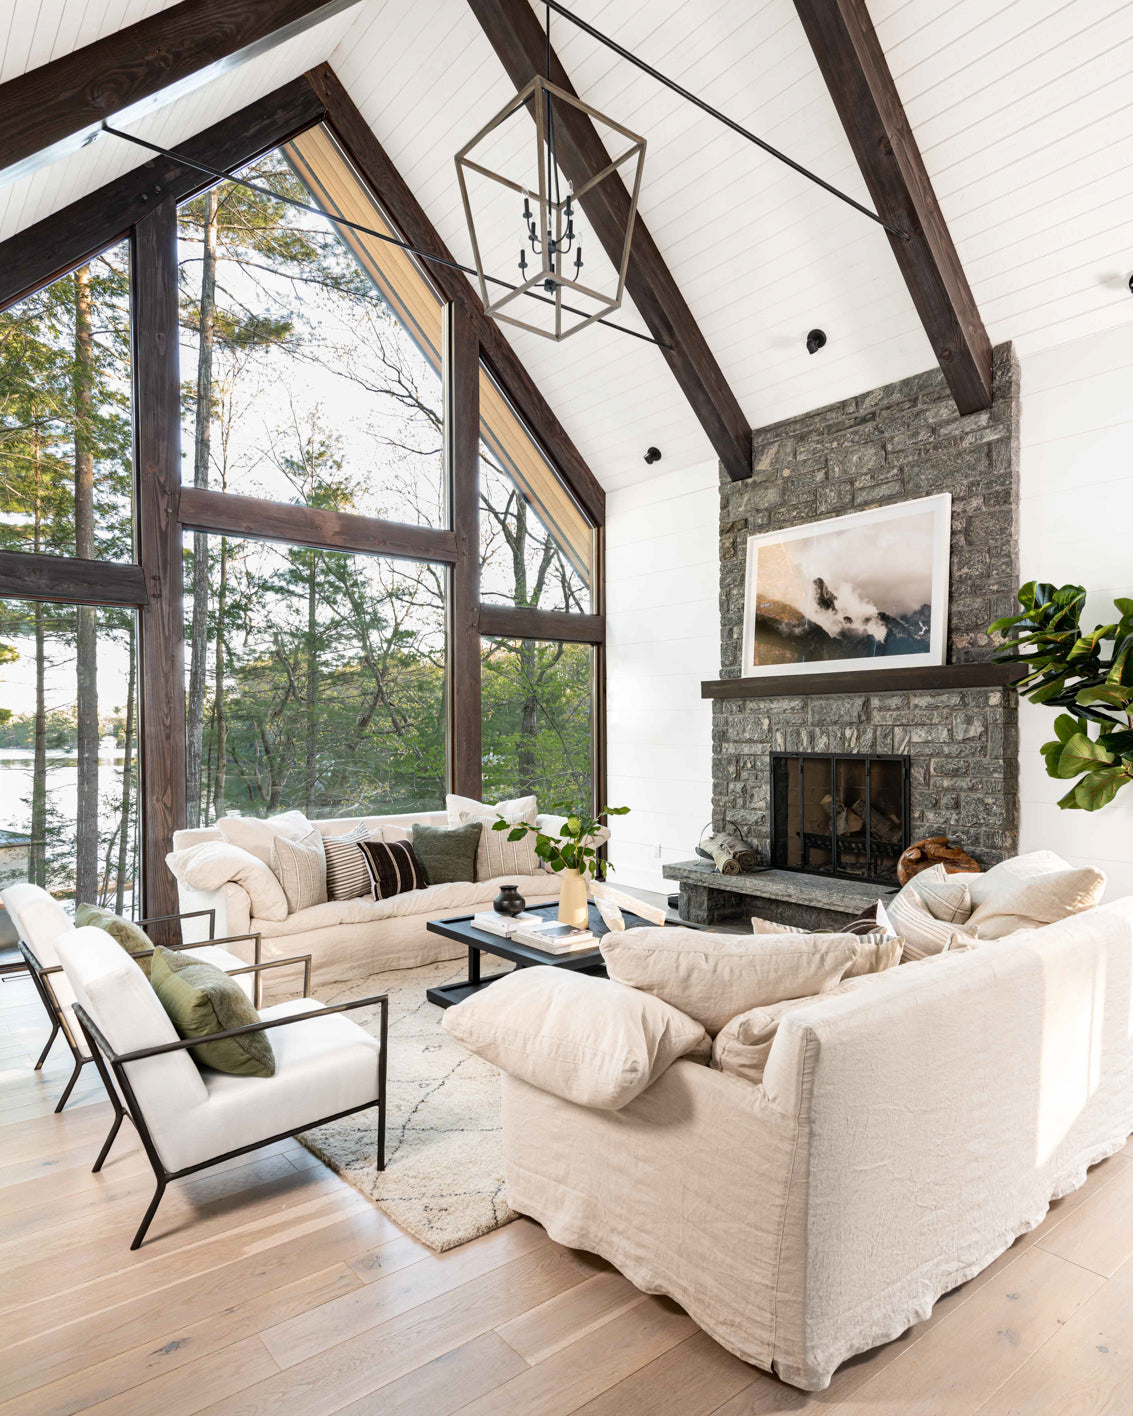 White living room with wood beam and white furniture.